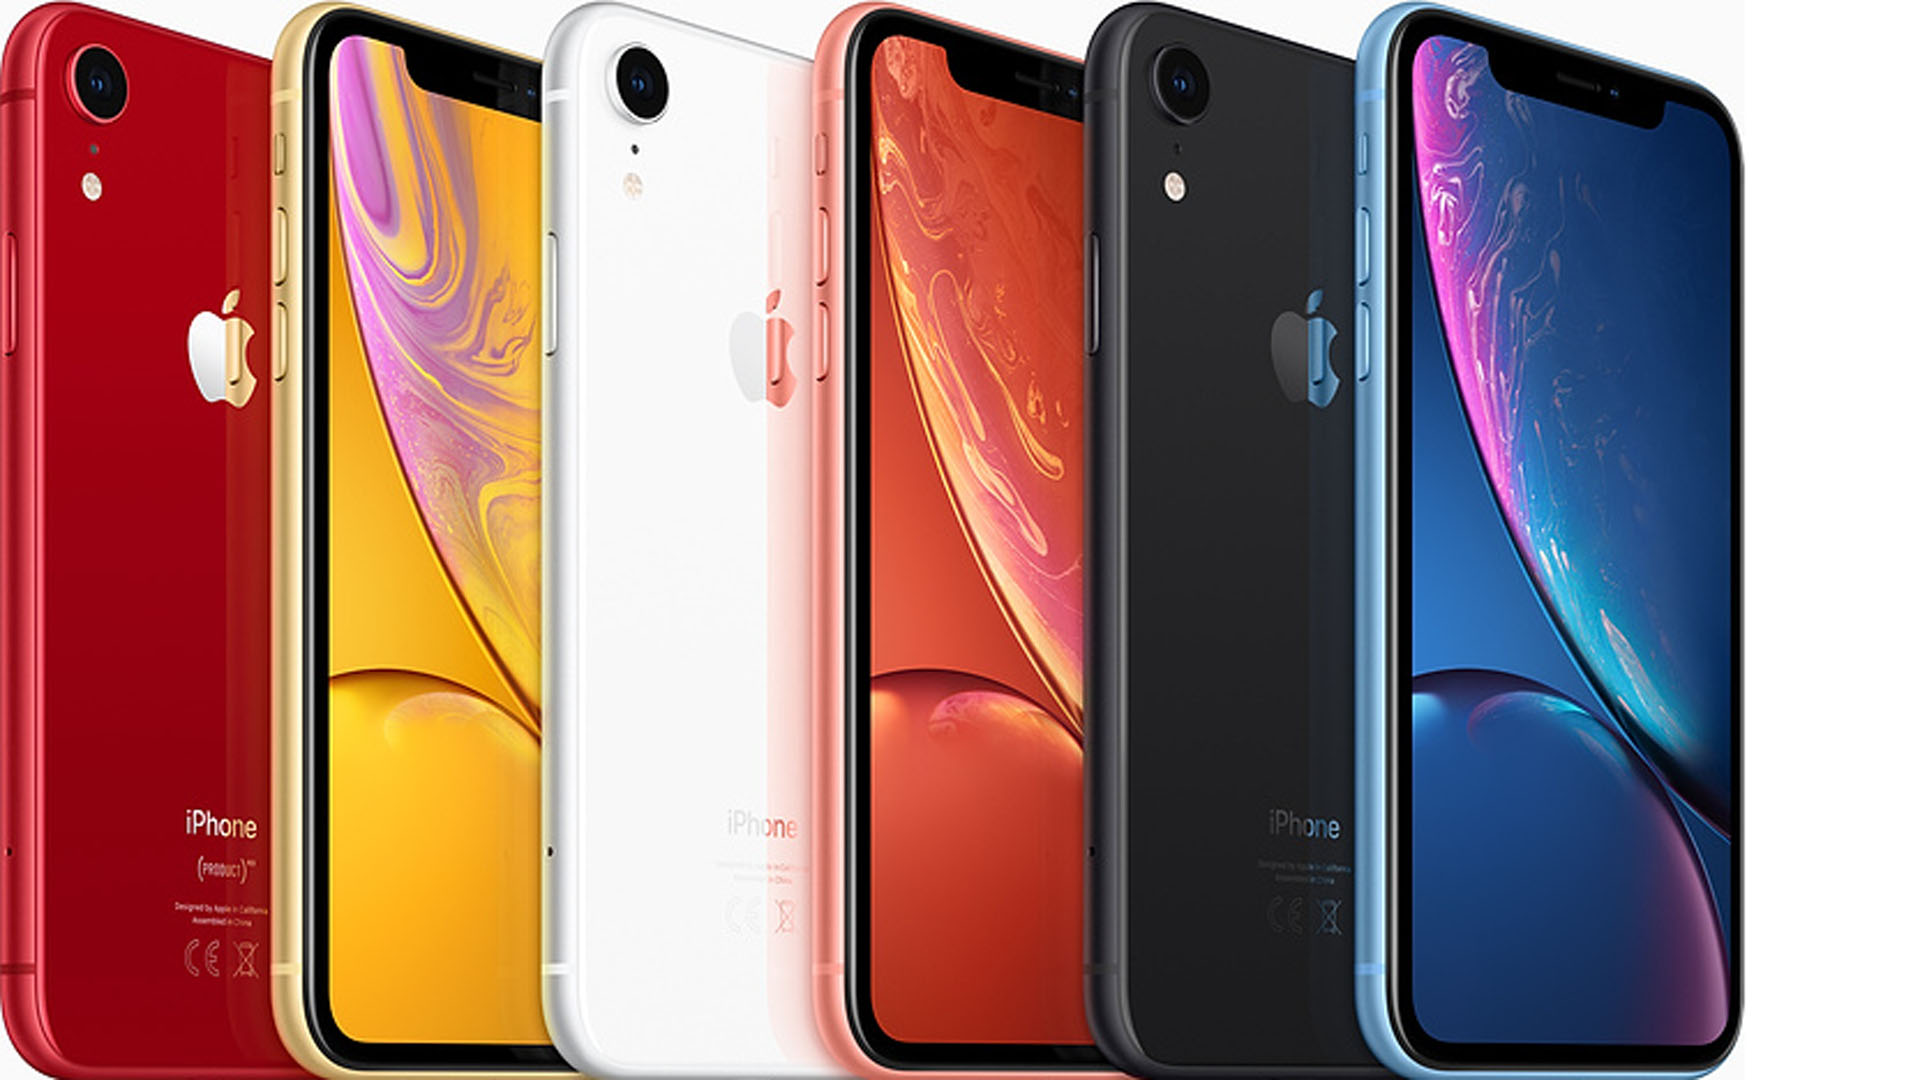 El iPhone XR en tres versiones de 64 GB, 128 GB y 256 GB